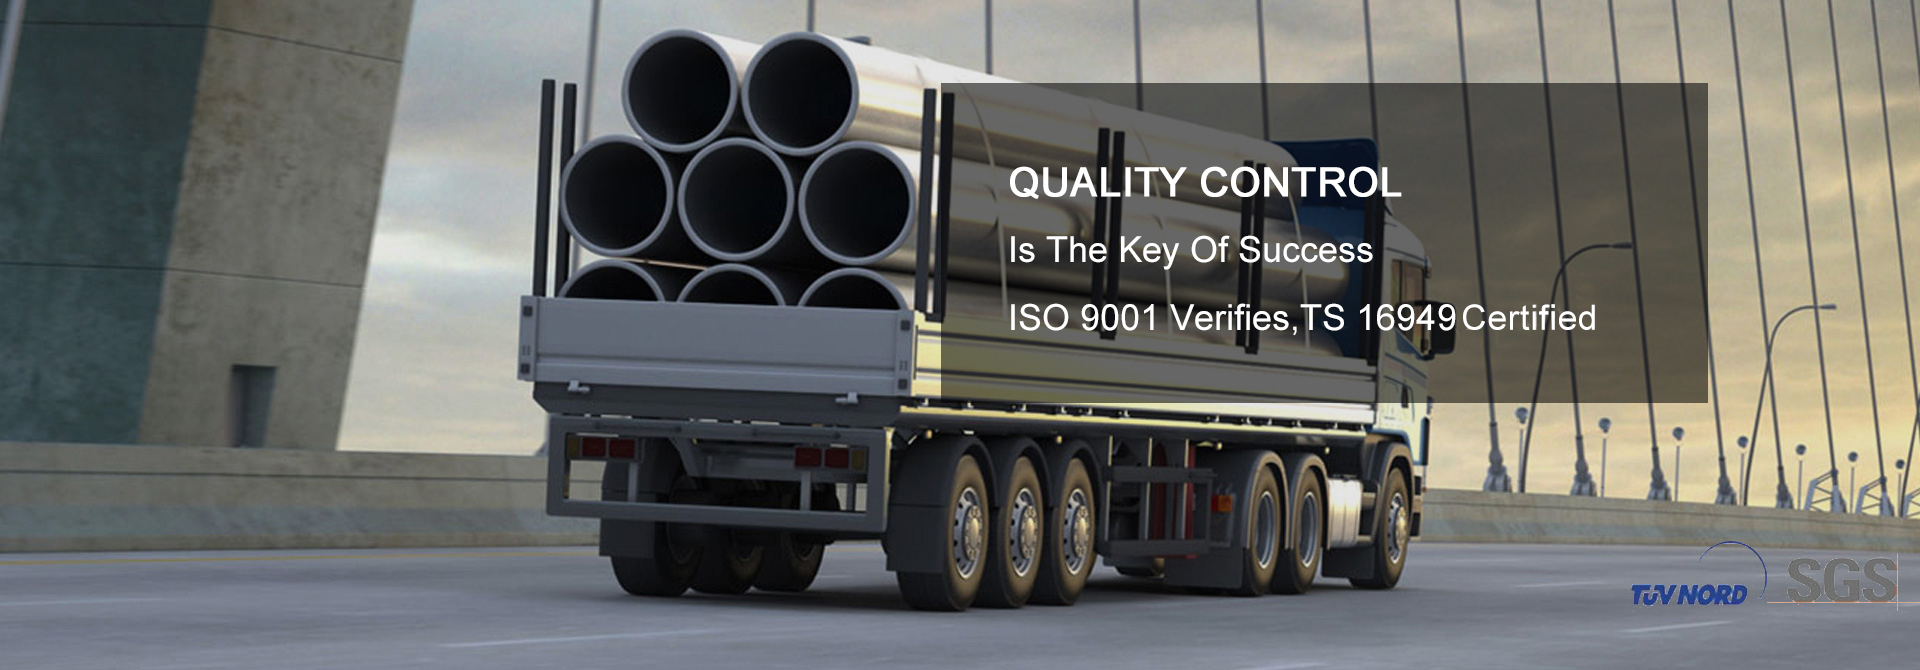 Quality Control Is The Key Of Success, ISO 9001 Verifies,TS 16949 Certified.